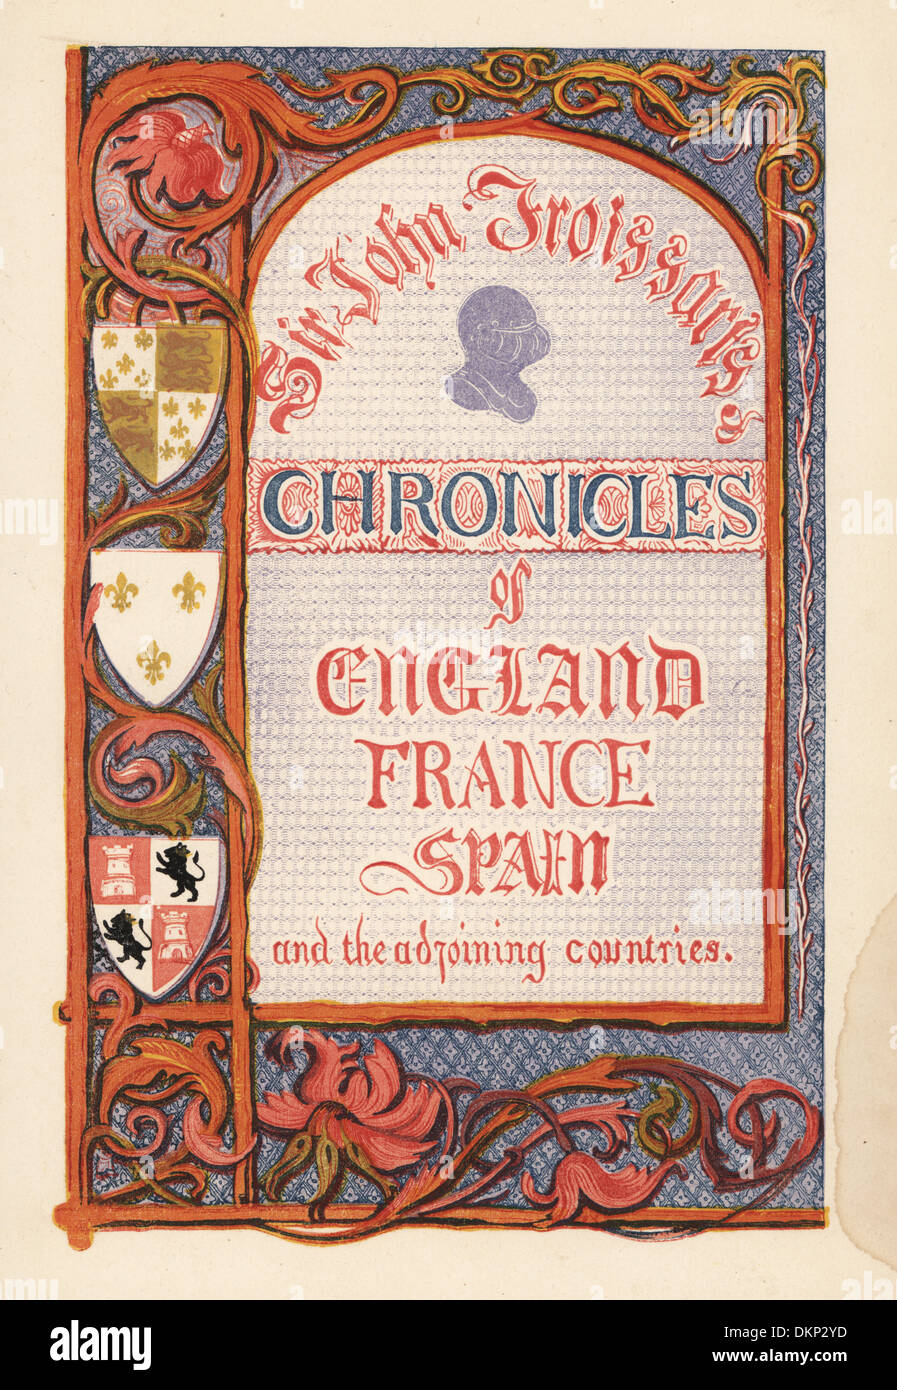 Illuminated title page with calligraphy and border of heraldic shields. - Stock Image